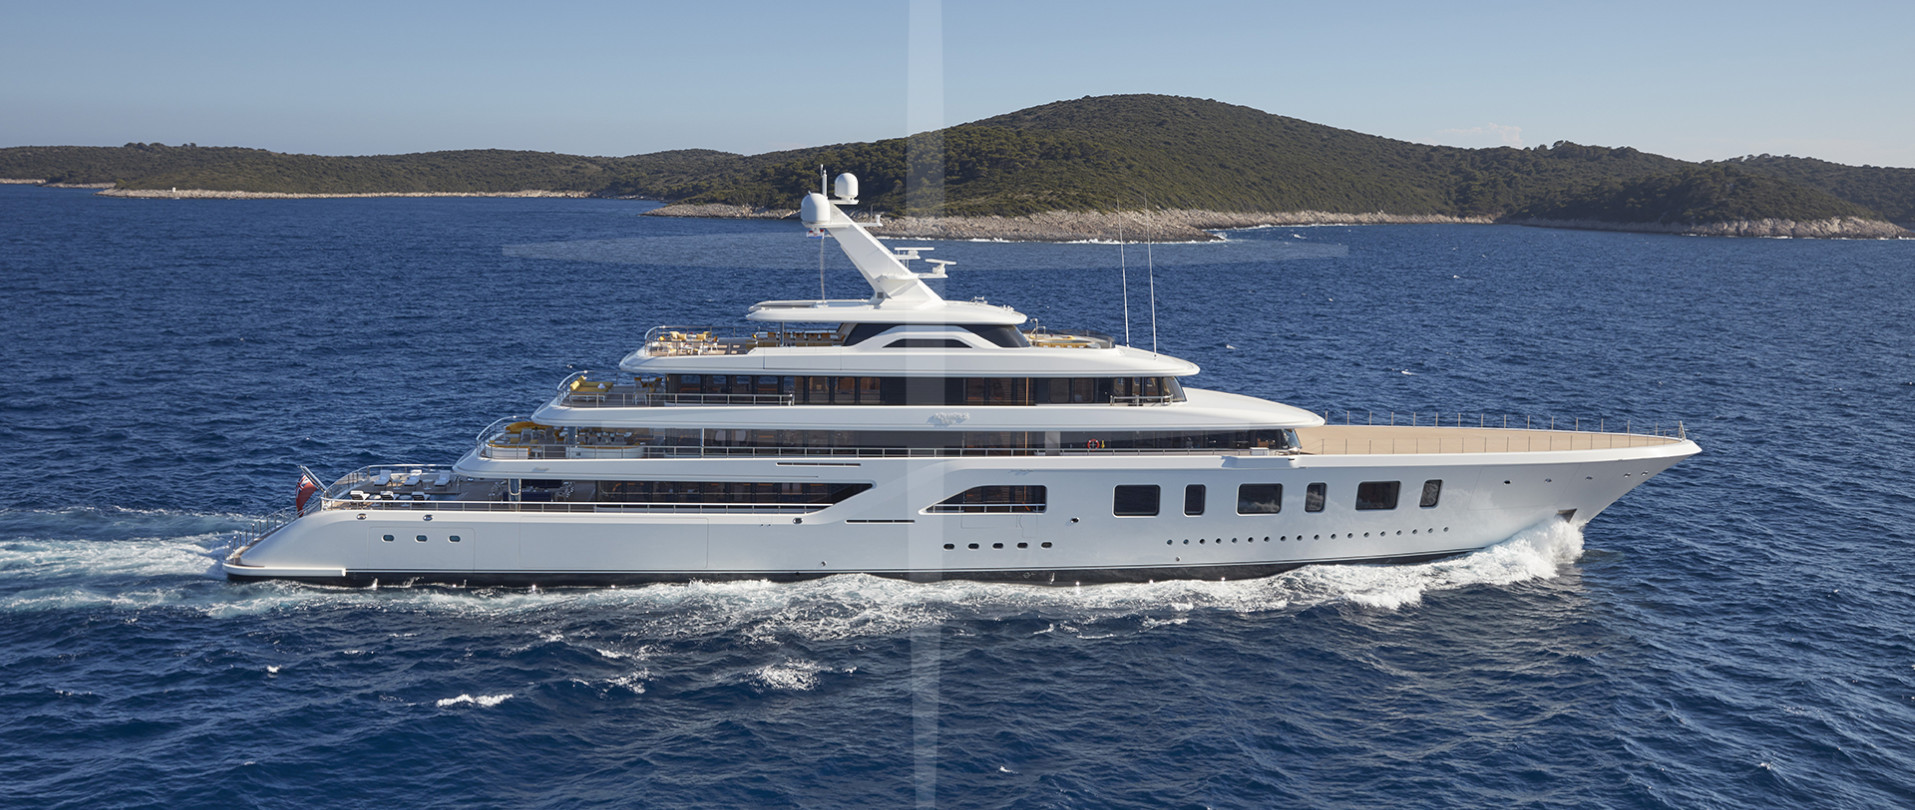 Aquarius, available summer 2020 in the West Mediterranean photo 1